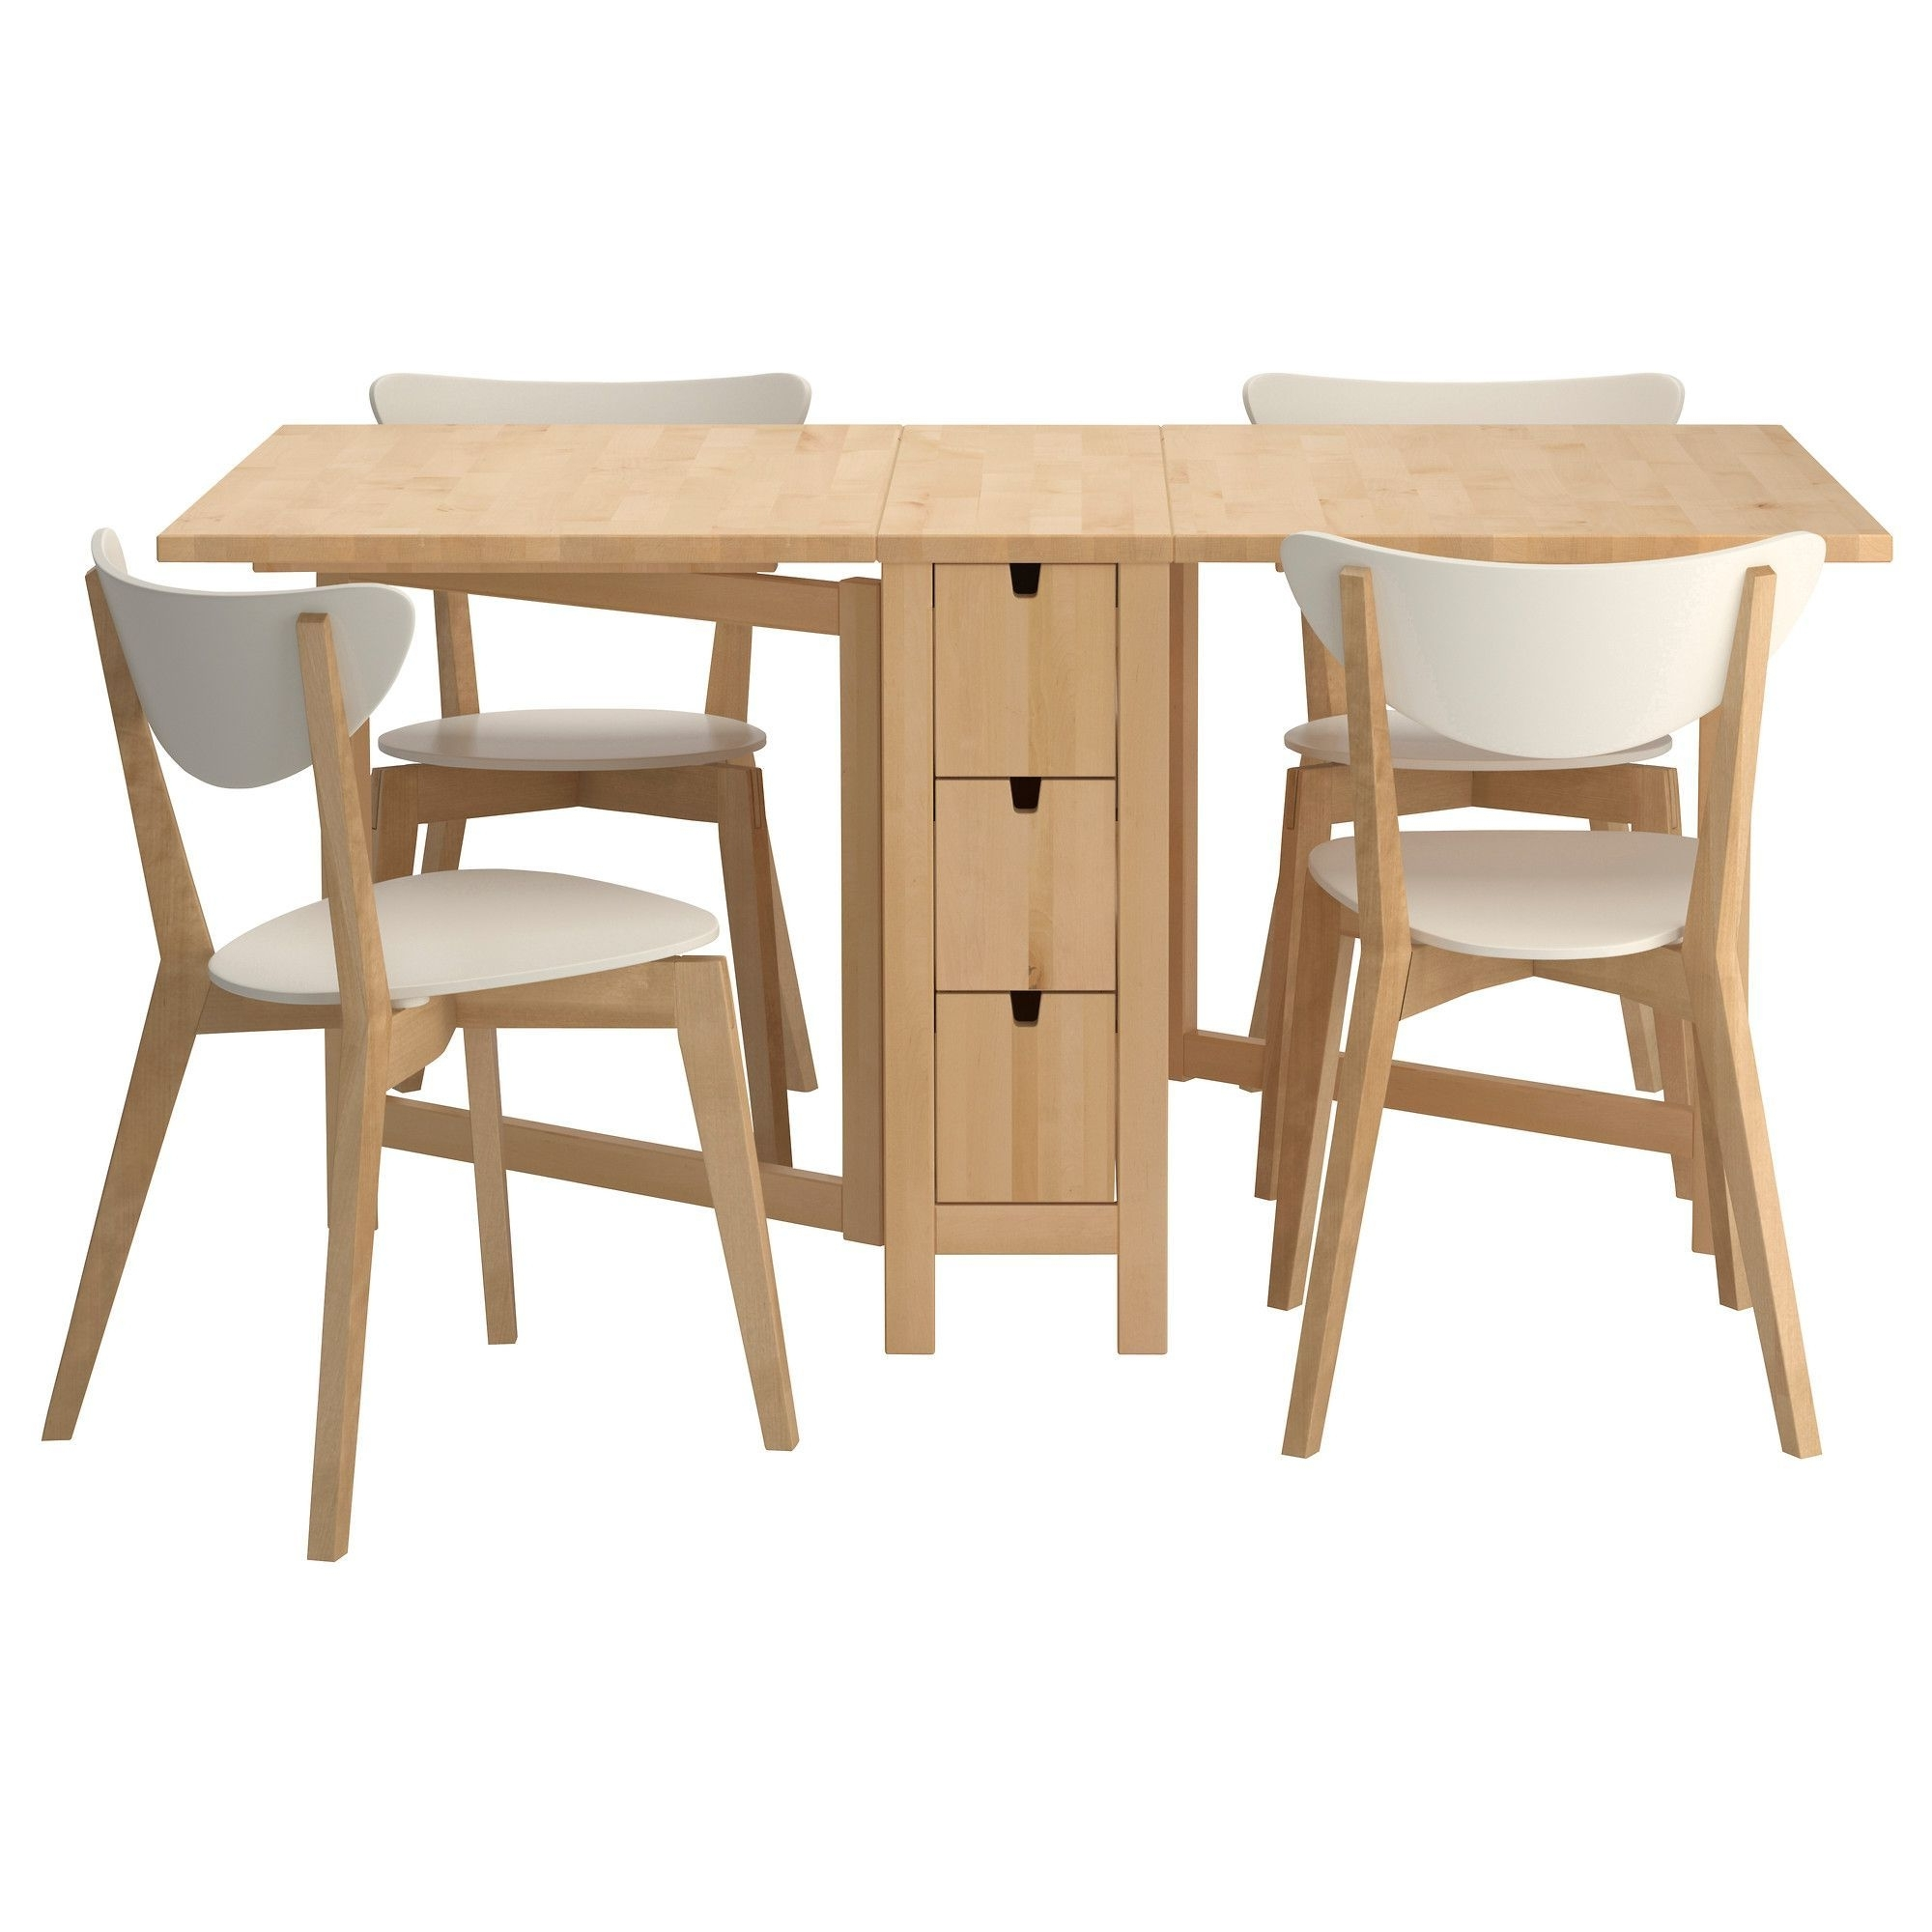 Cheap Folding Dining Tables Intended For Most Current Gorgeous Small Dining Table That Can Be Folded Complete With The (View 6 of 25)